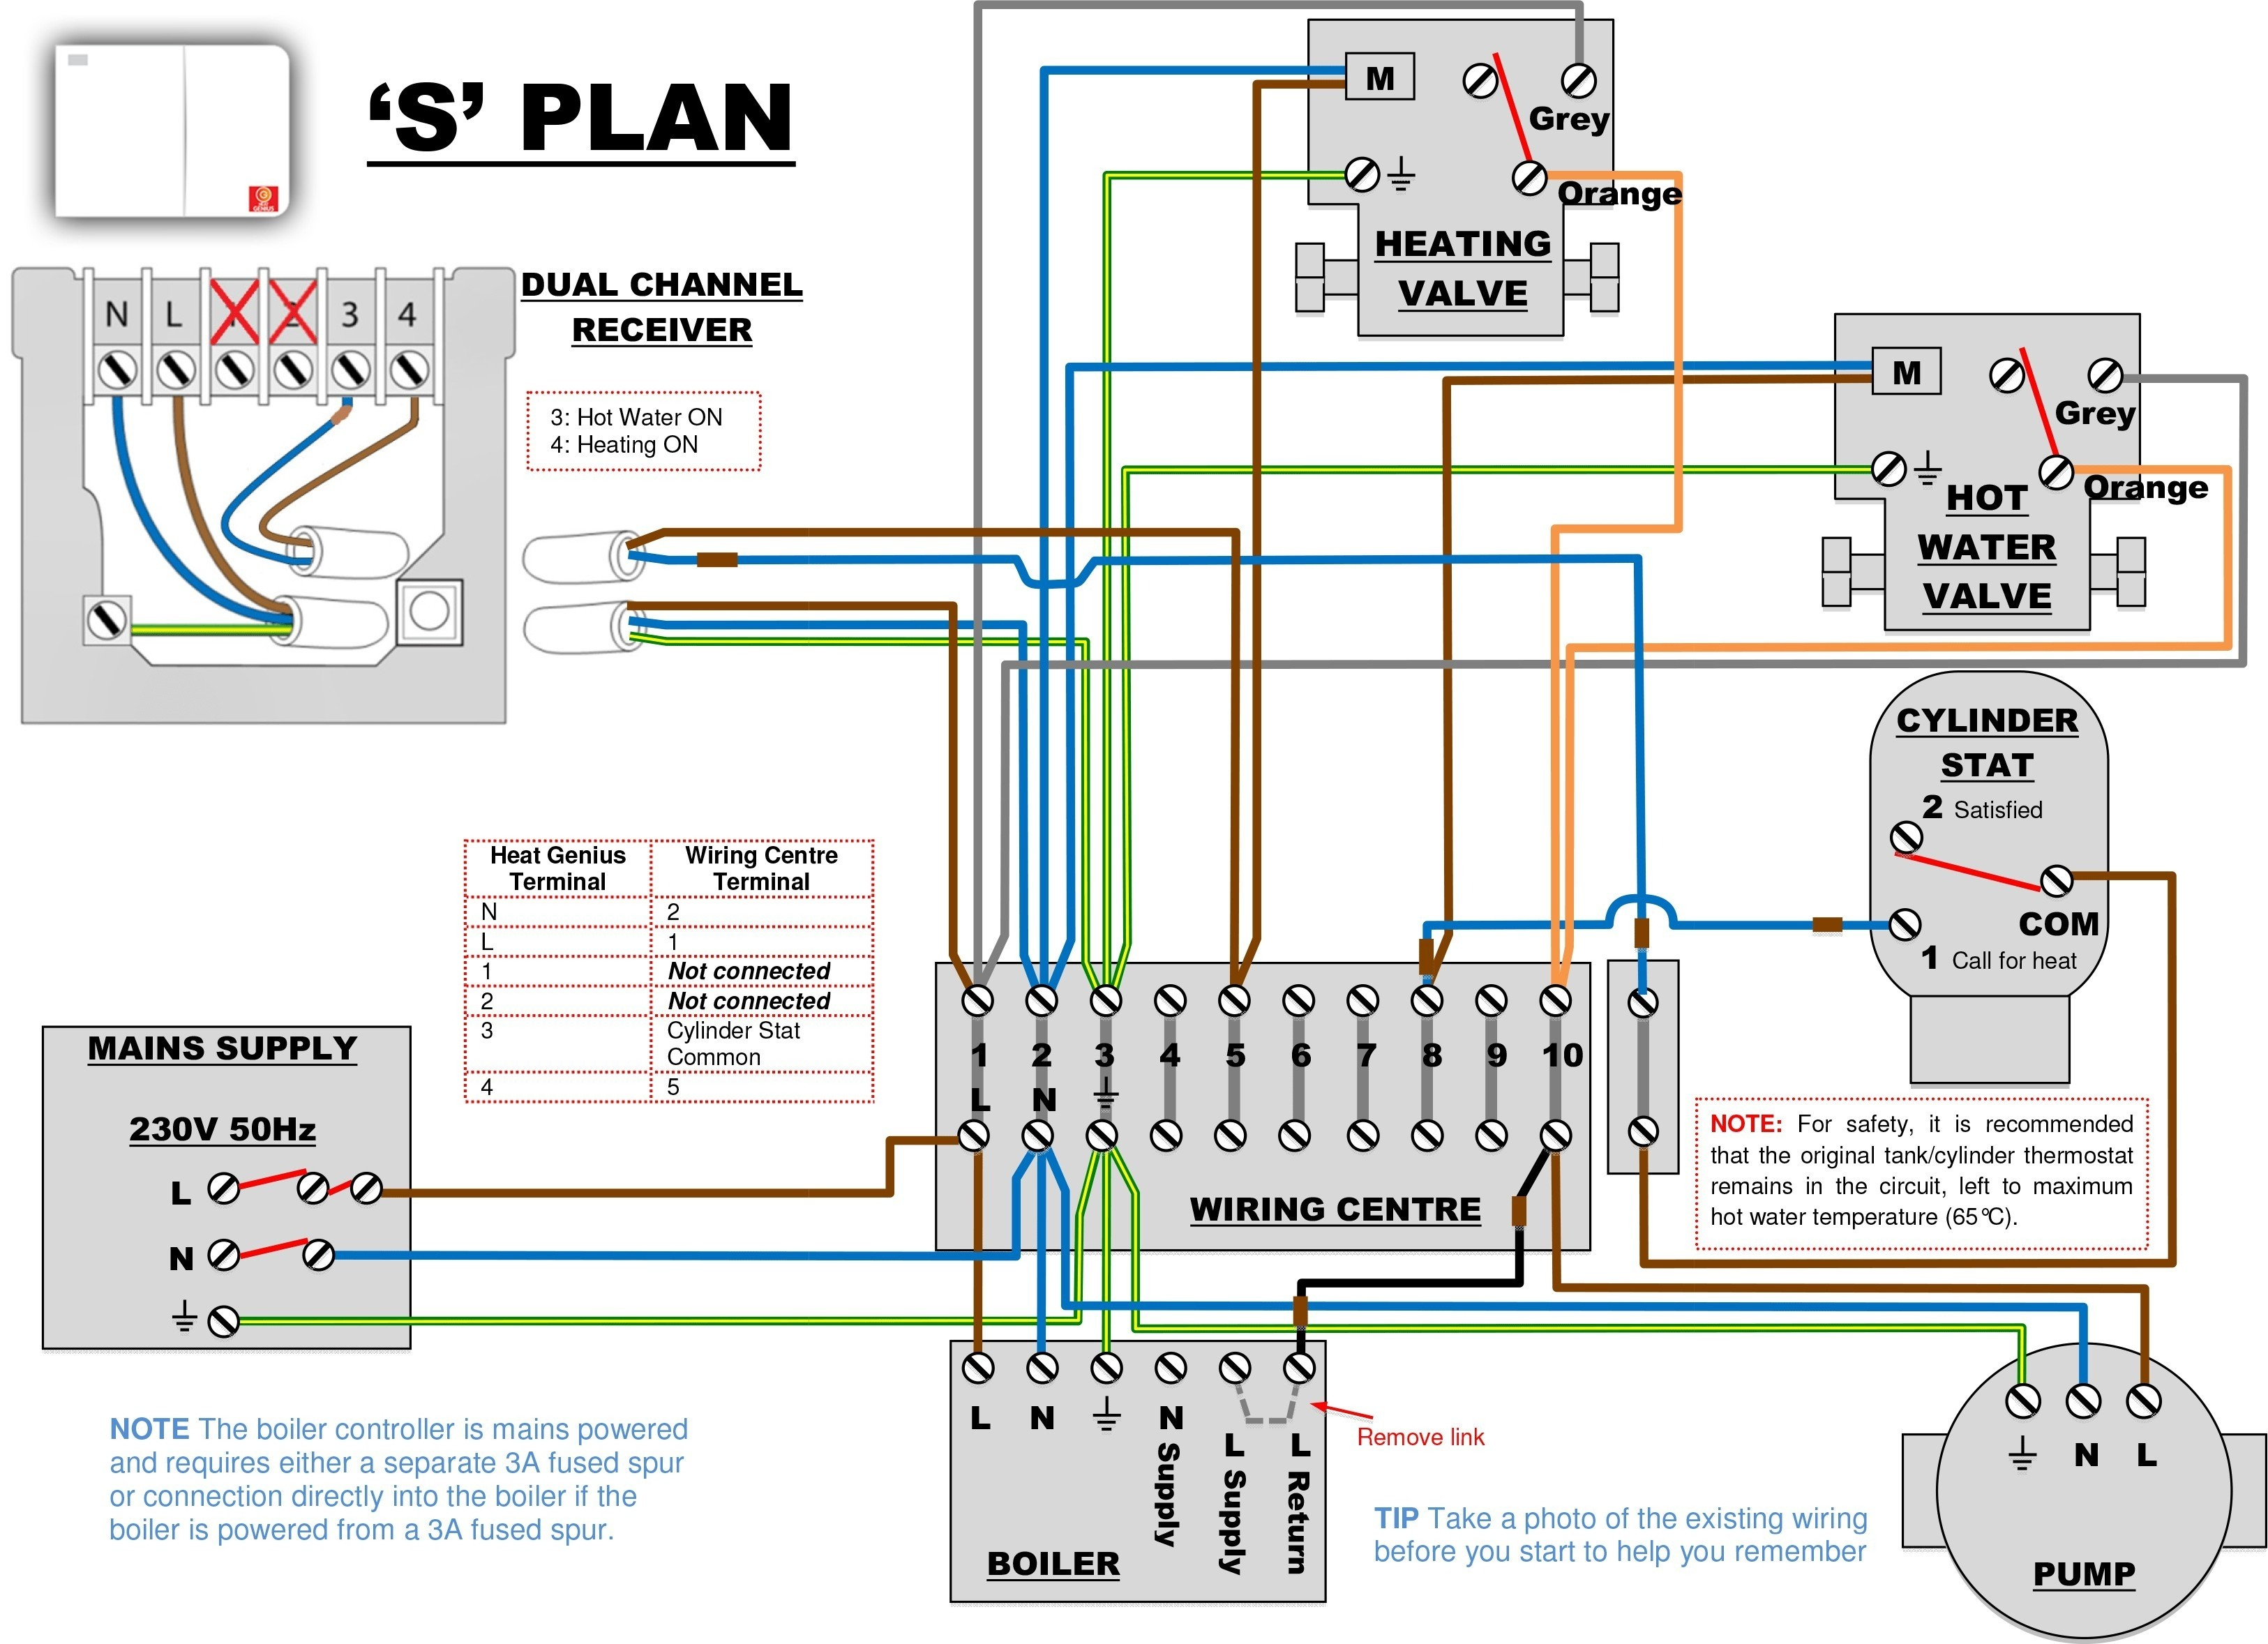 [GJFJ_338]  Carrier Furnace Wiring - Wireless Reversing Camera Diagram -  volvos80.kankubuktikan.jeanjaures37.fr | Carrier Furnace Wiring Schematics |  | Wiring Diagram